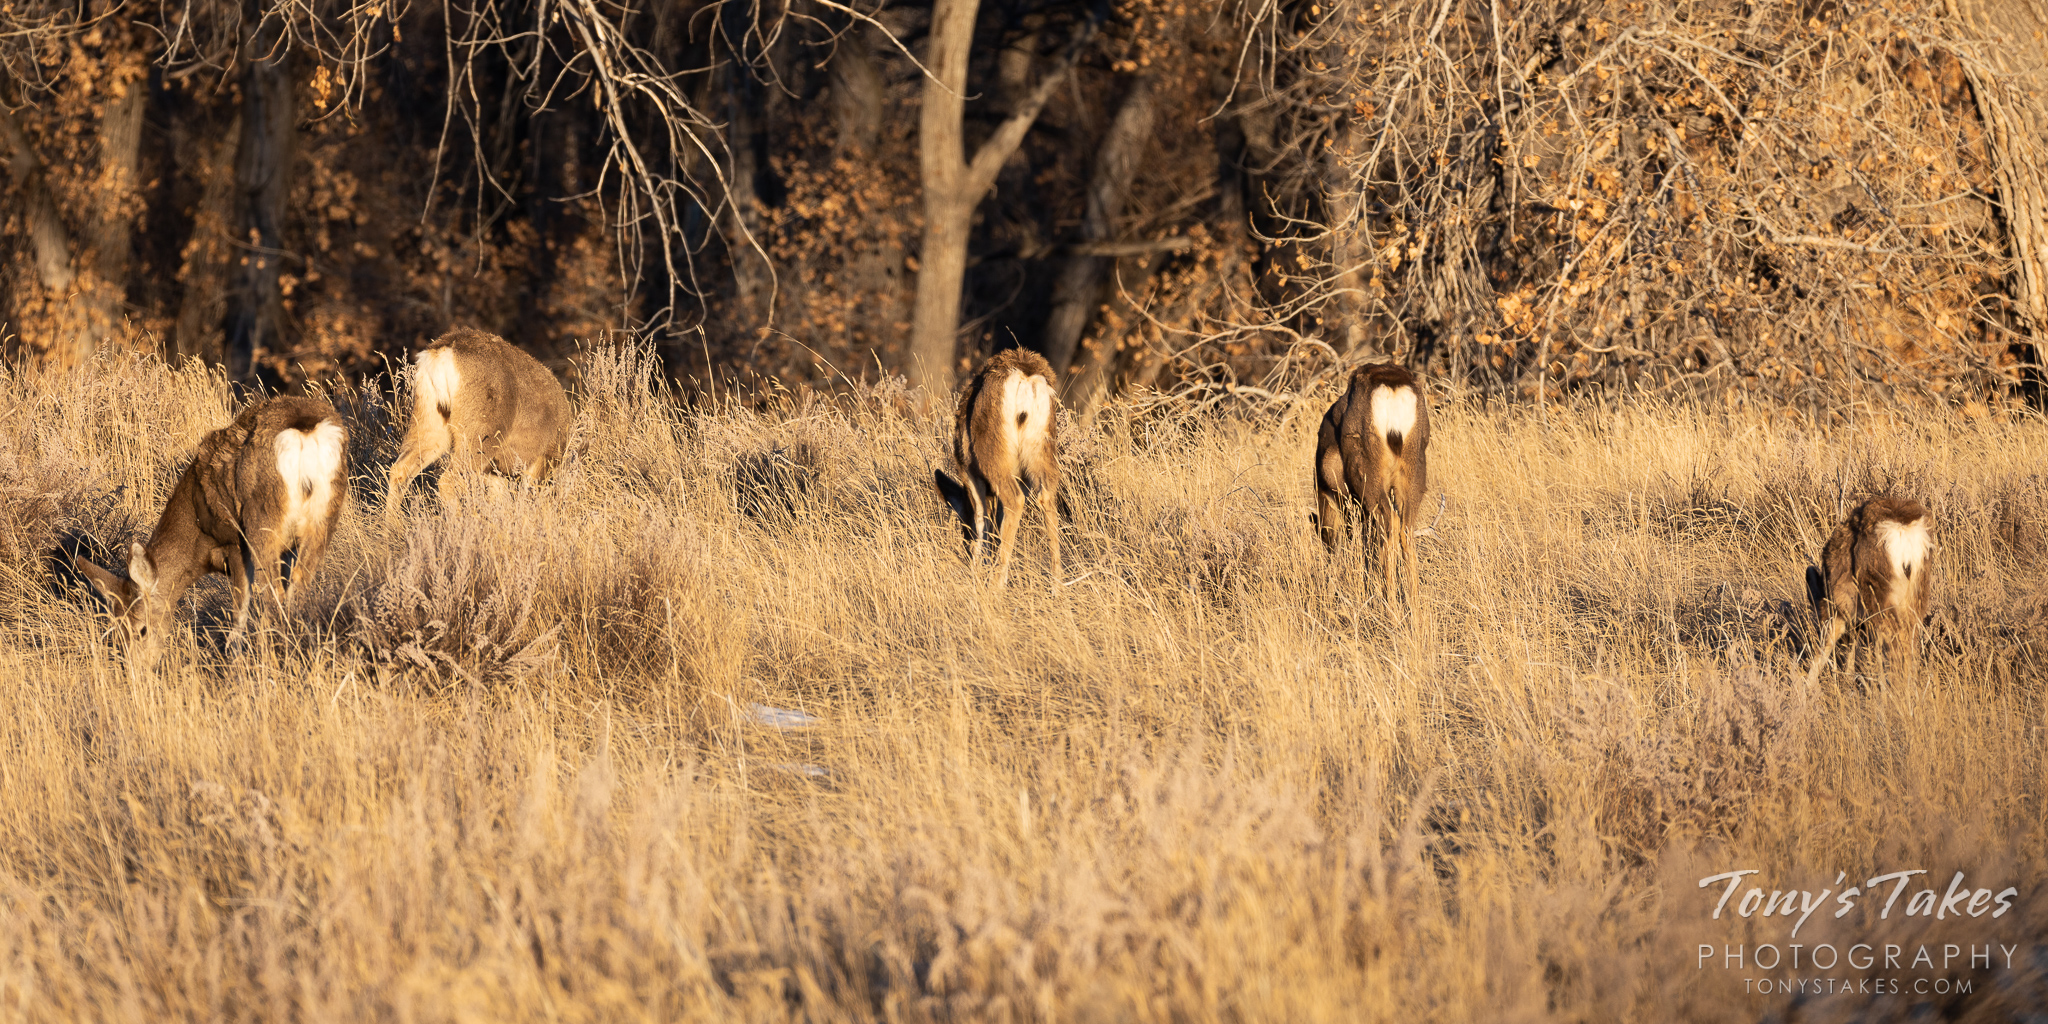 Five moons! Grazing mule deer turn their backsides to the photographer. (© Tony's Takes)